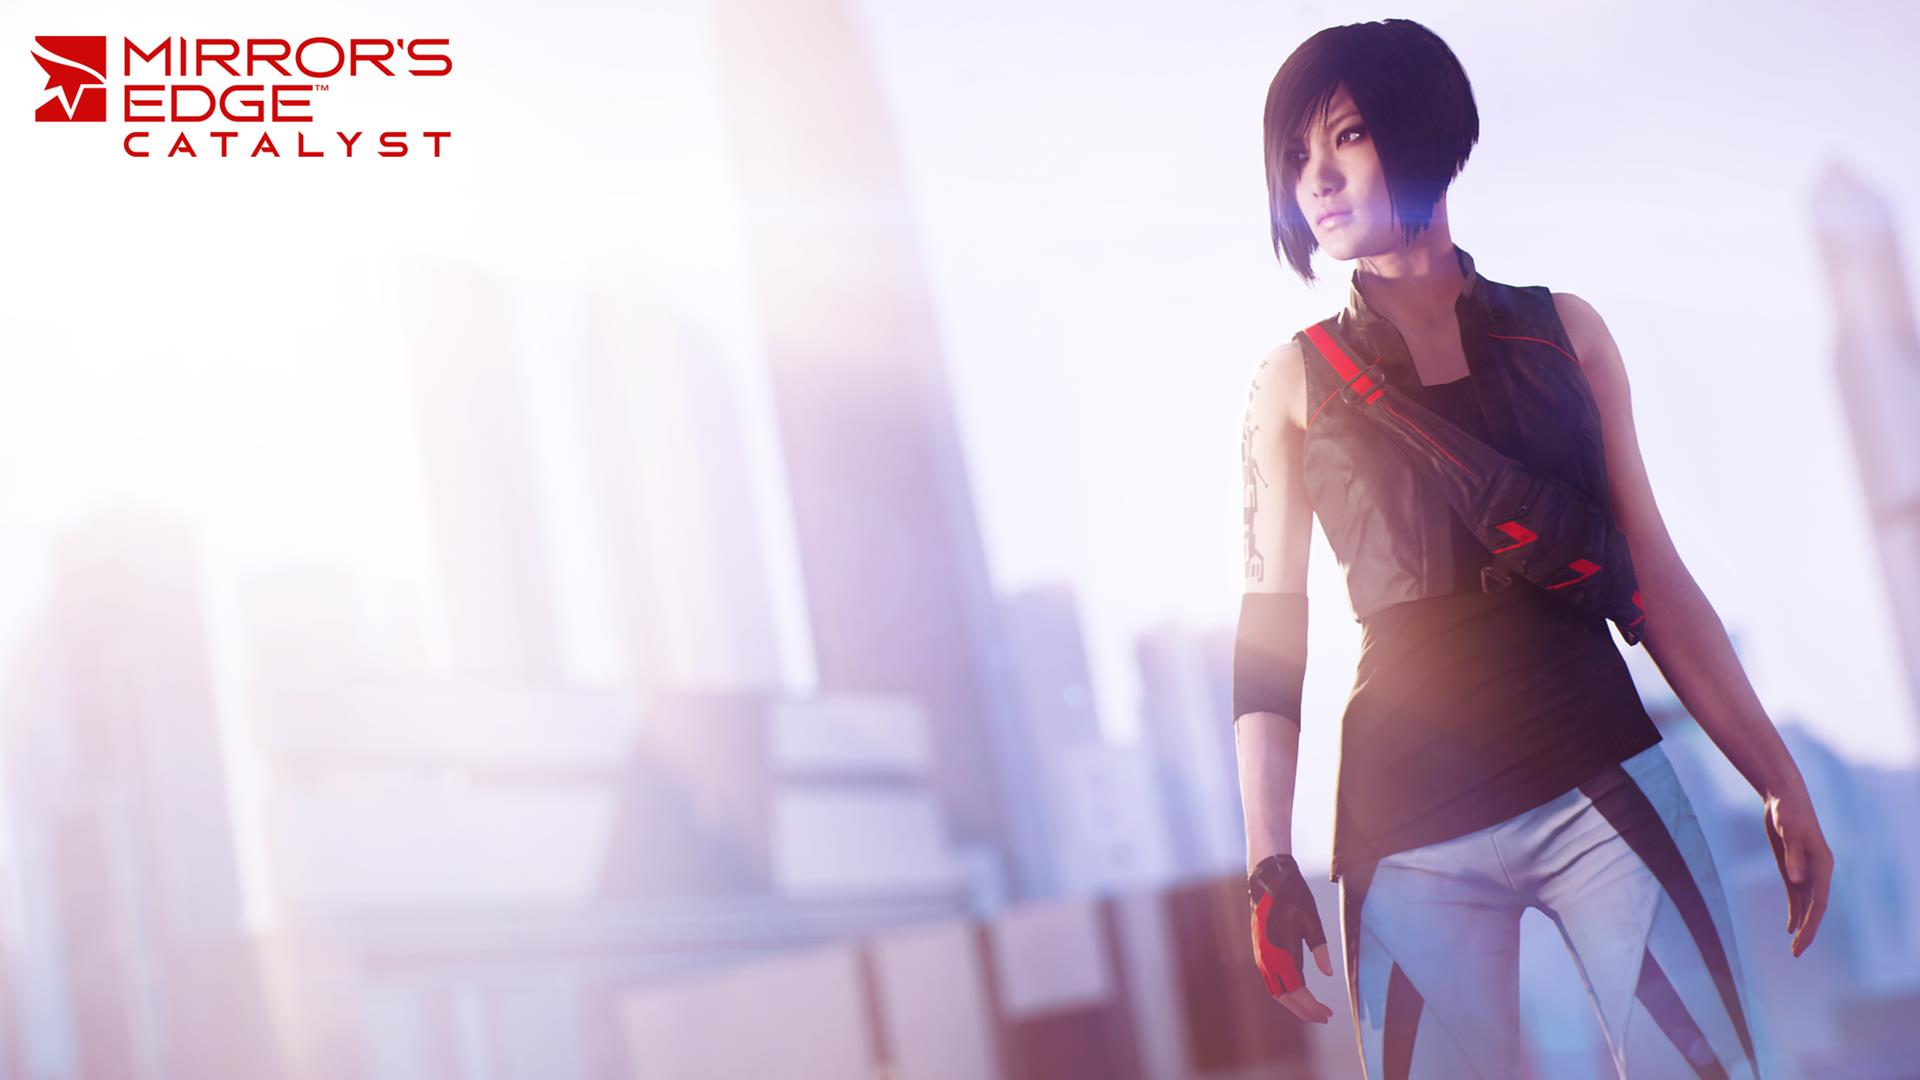 mirrors-edge-catalyst-1